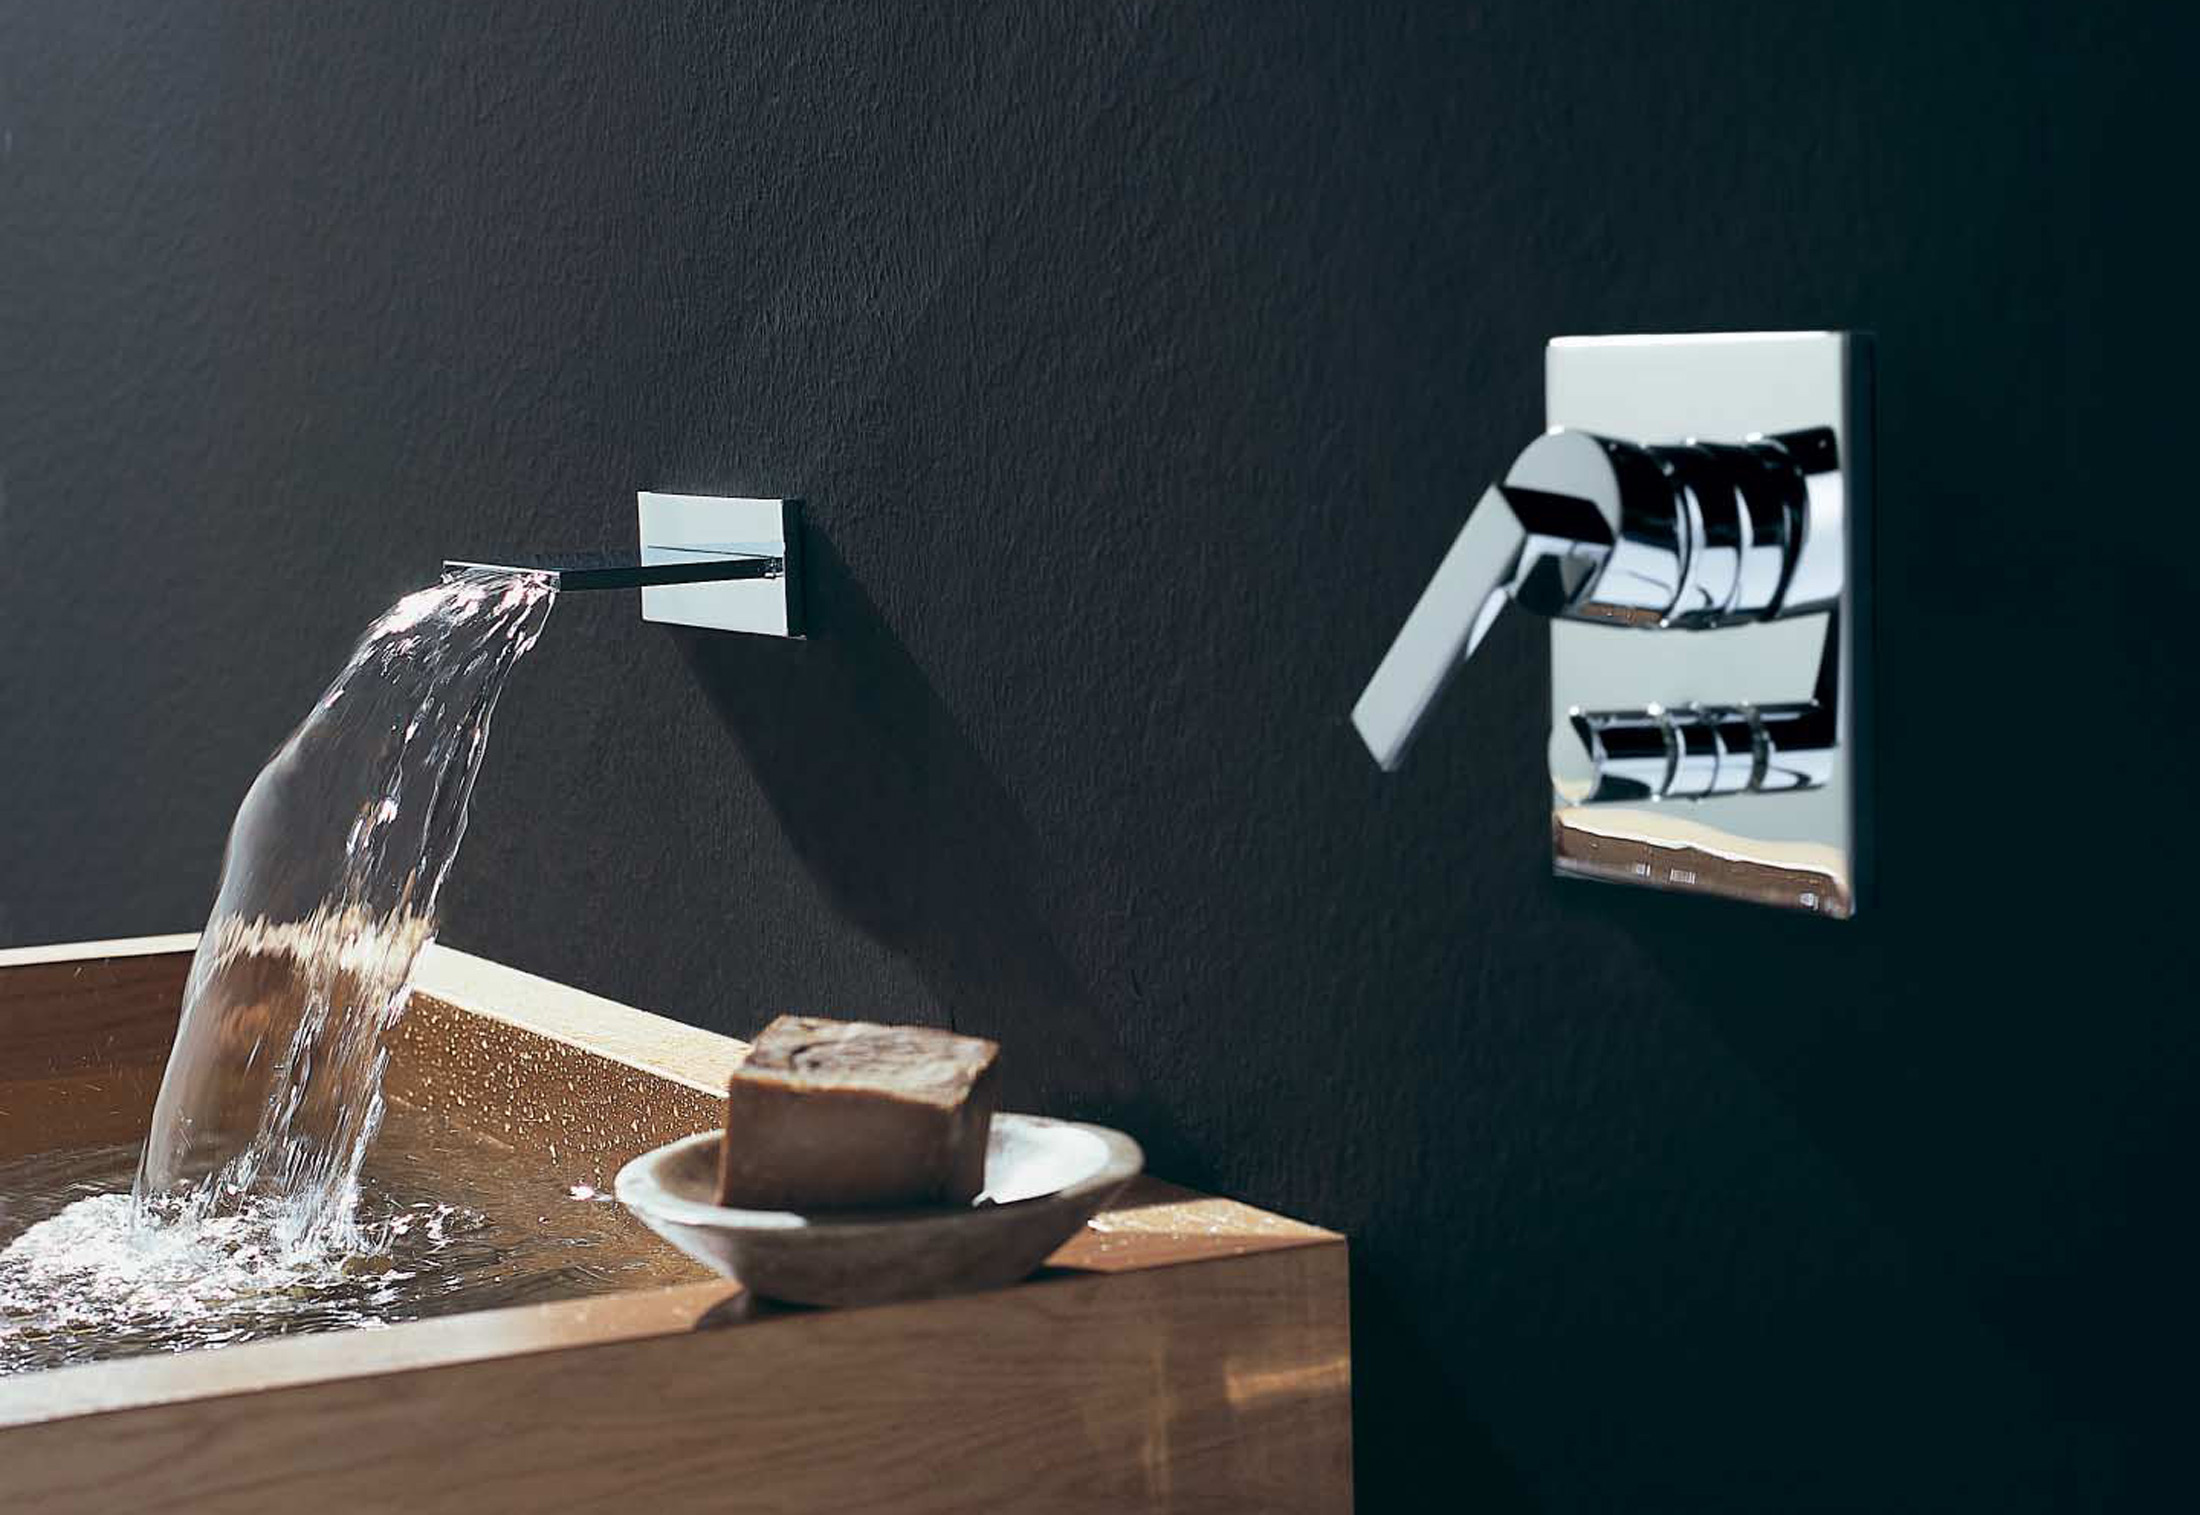 MEM Wall-mounted waterfall bath spout by Dornbracht | STYLEPARK